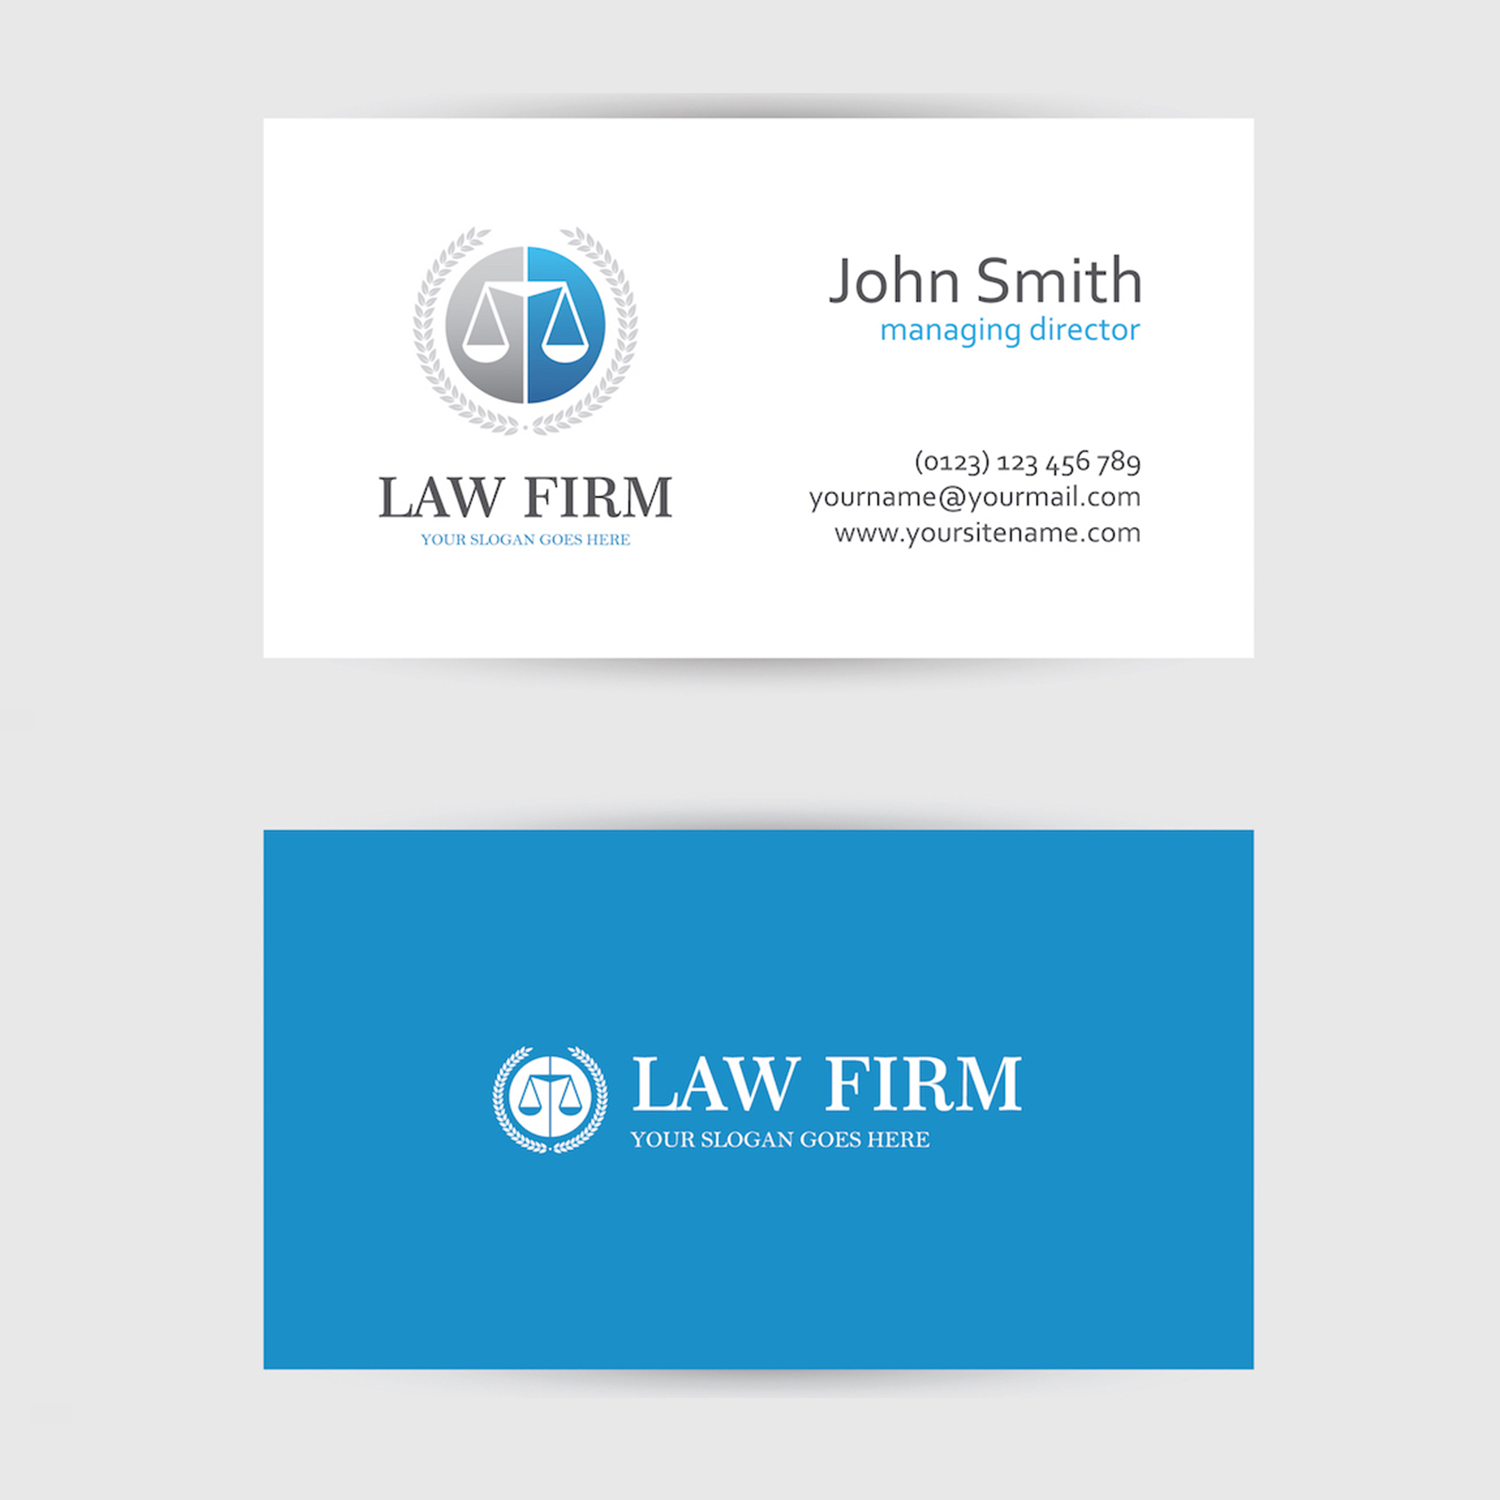 LawFirmBusinessCardDesign.jpg